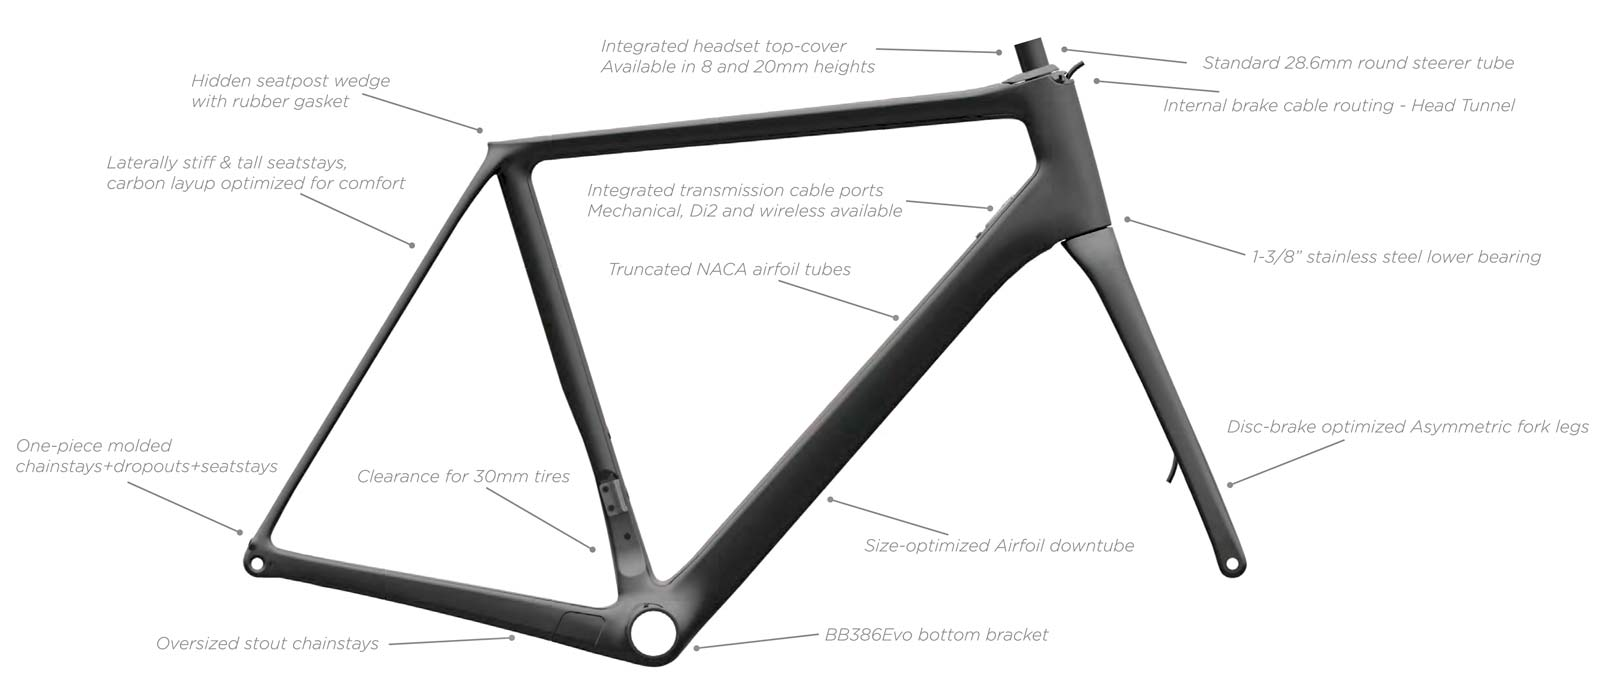 Aurum Magma road bike, lightweight carbon disc brake road race bike by Basso and Contador,tech details